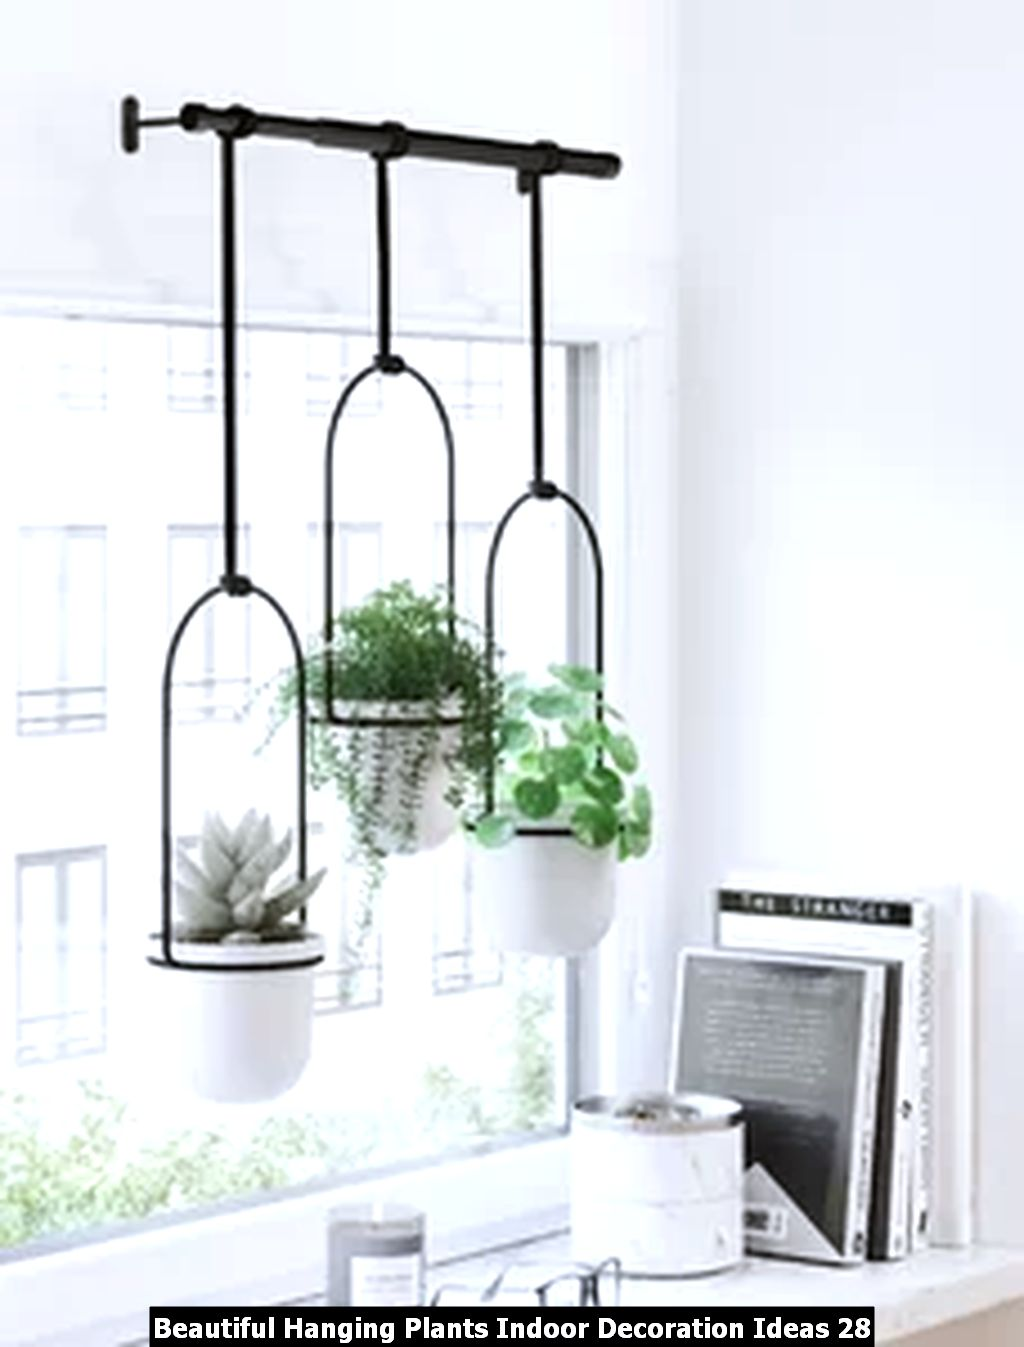 Beautiful Hanging Plants Indoor Decoration Ideas 28